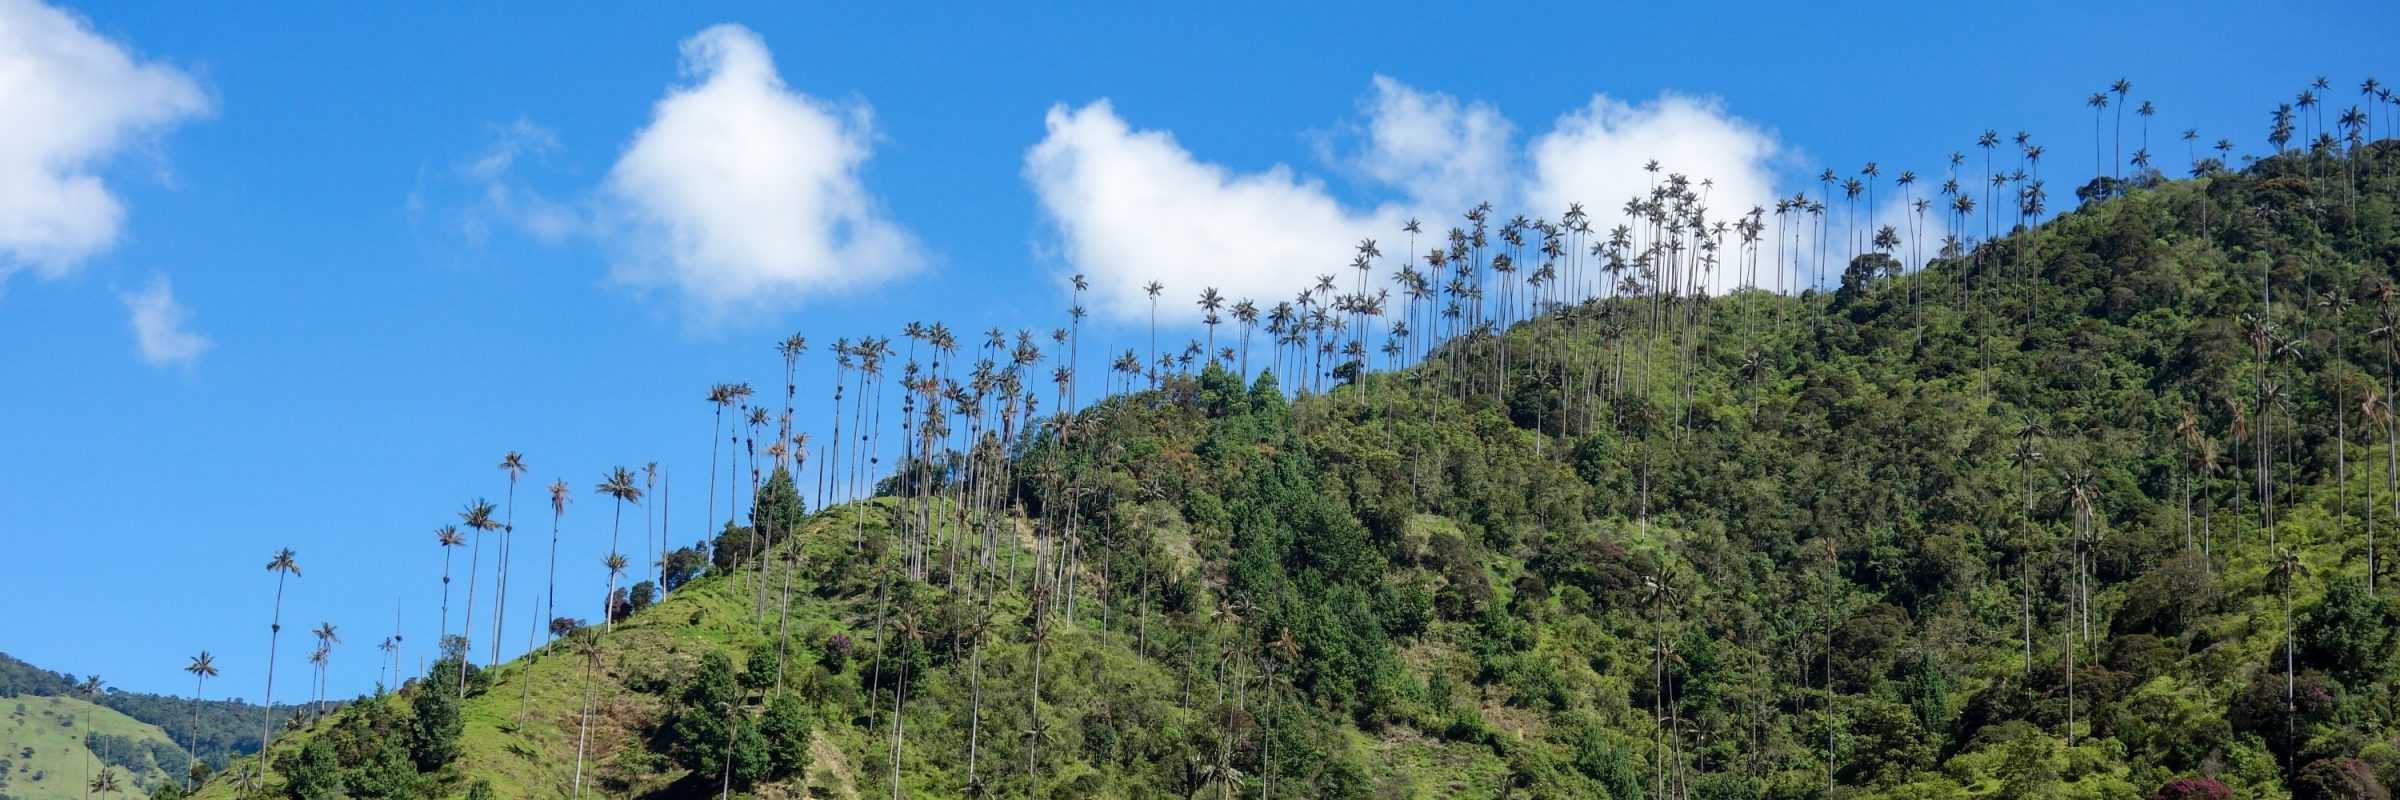 Palm trees in the Cocora Valley, Colombia